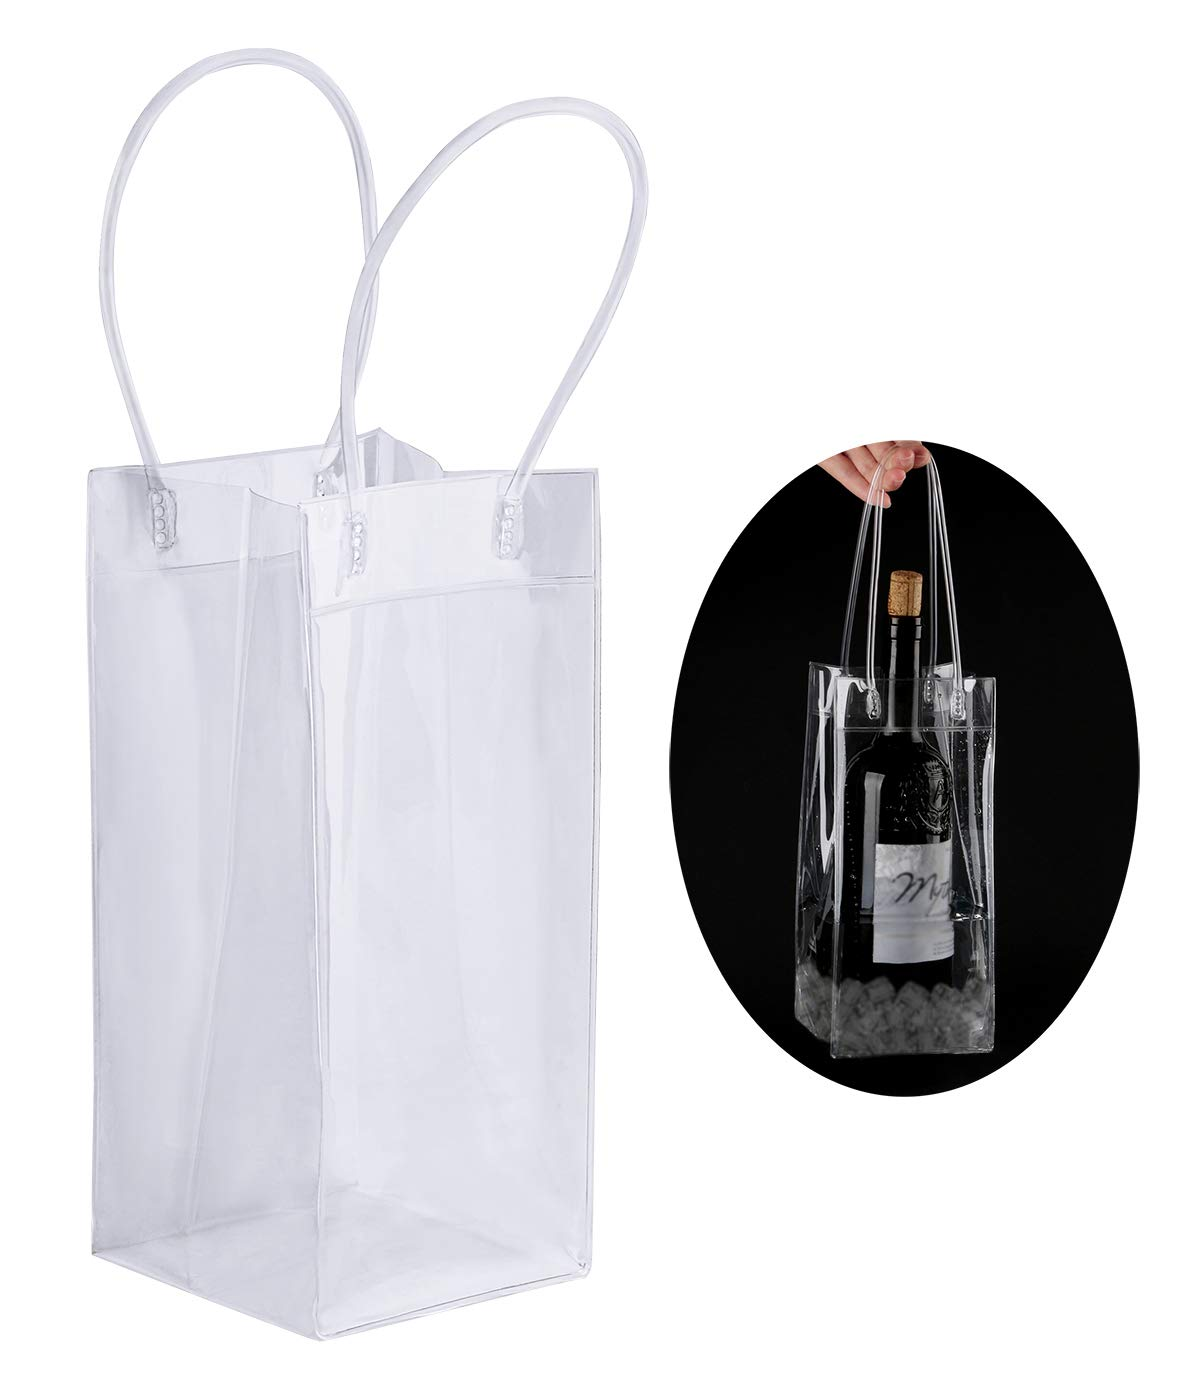 Driew Wine Ice Bag Pack of 24, Clear Wine Bags with Handles Beverages Cooler Bag for Wine Beer Party Outdoor